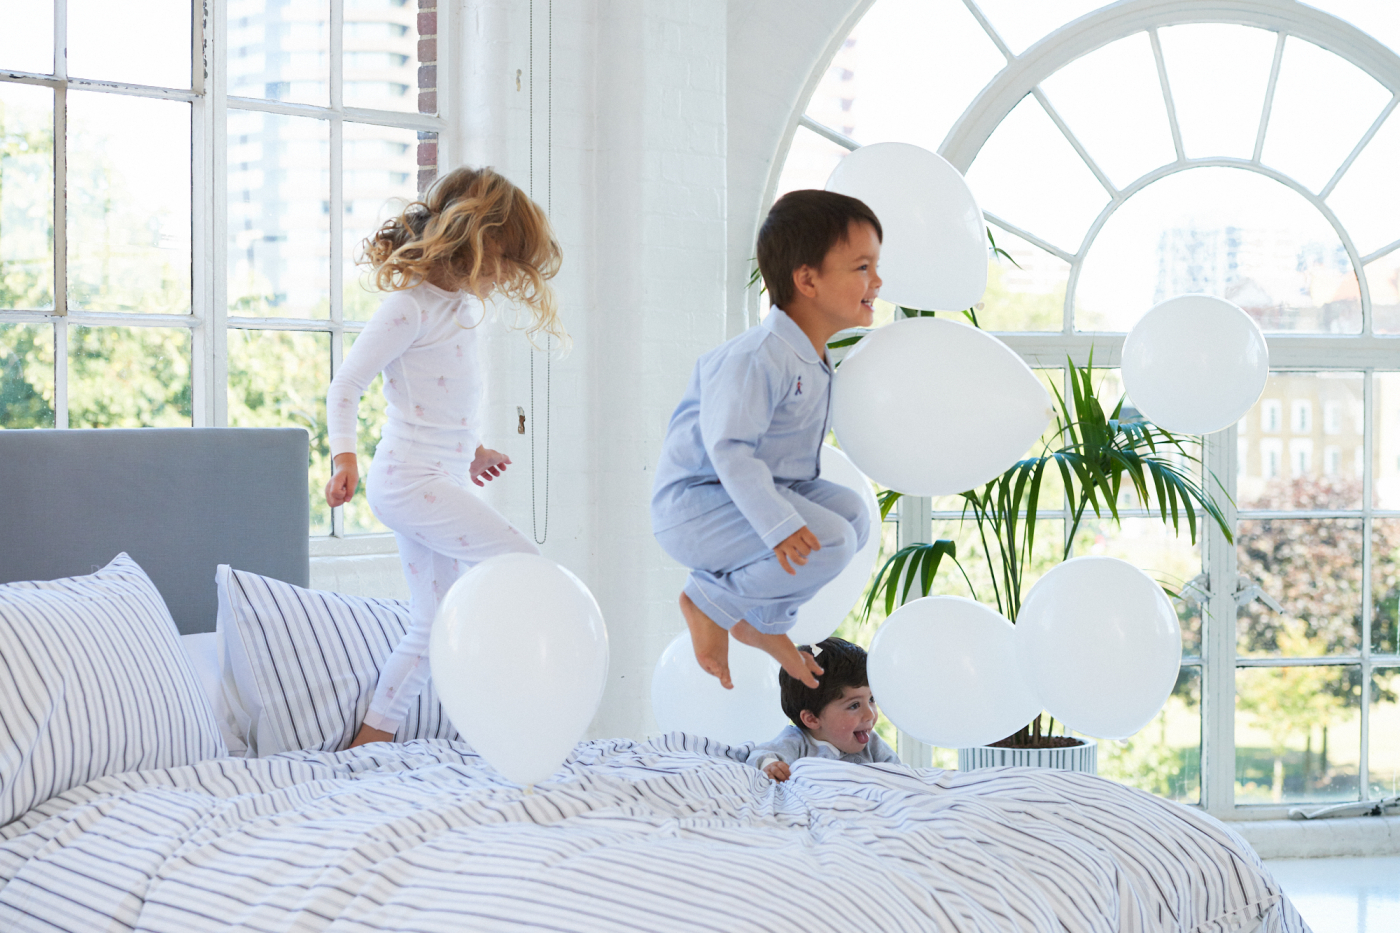 The White Company winter collection photographed by Dominic Marley